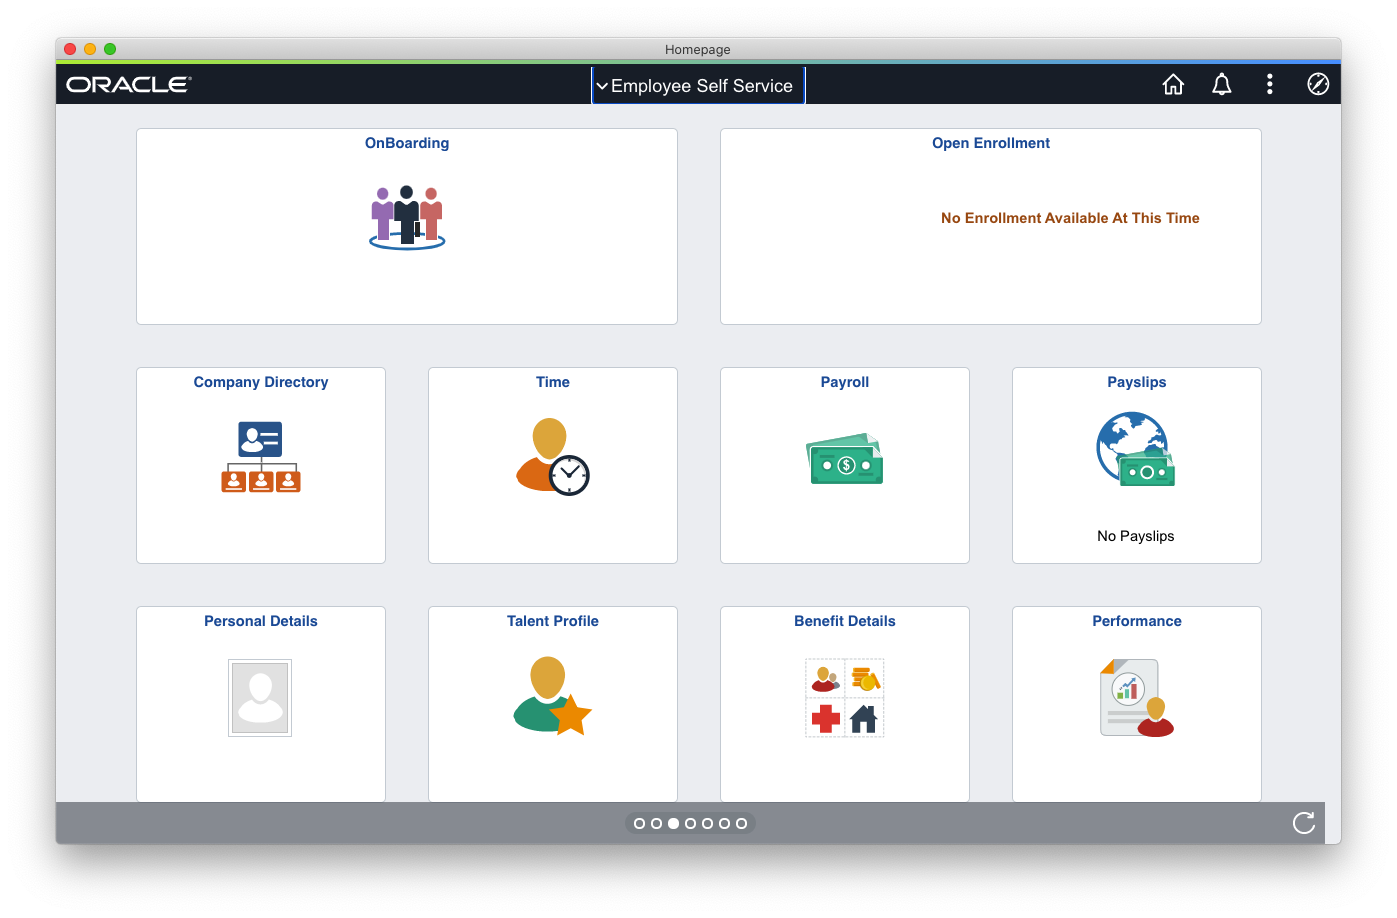 The PeopleSoft roadmap outlines for additional advancements in the PeopleSoft Fluid UI